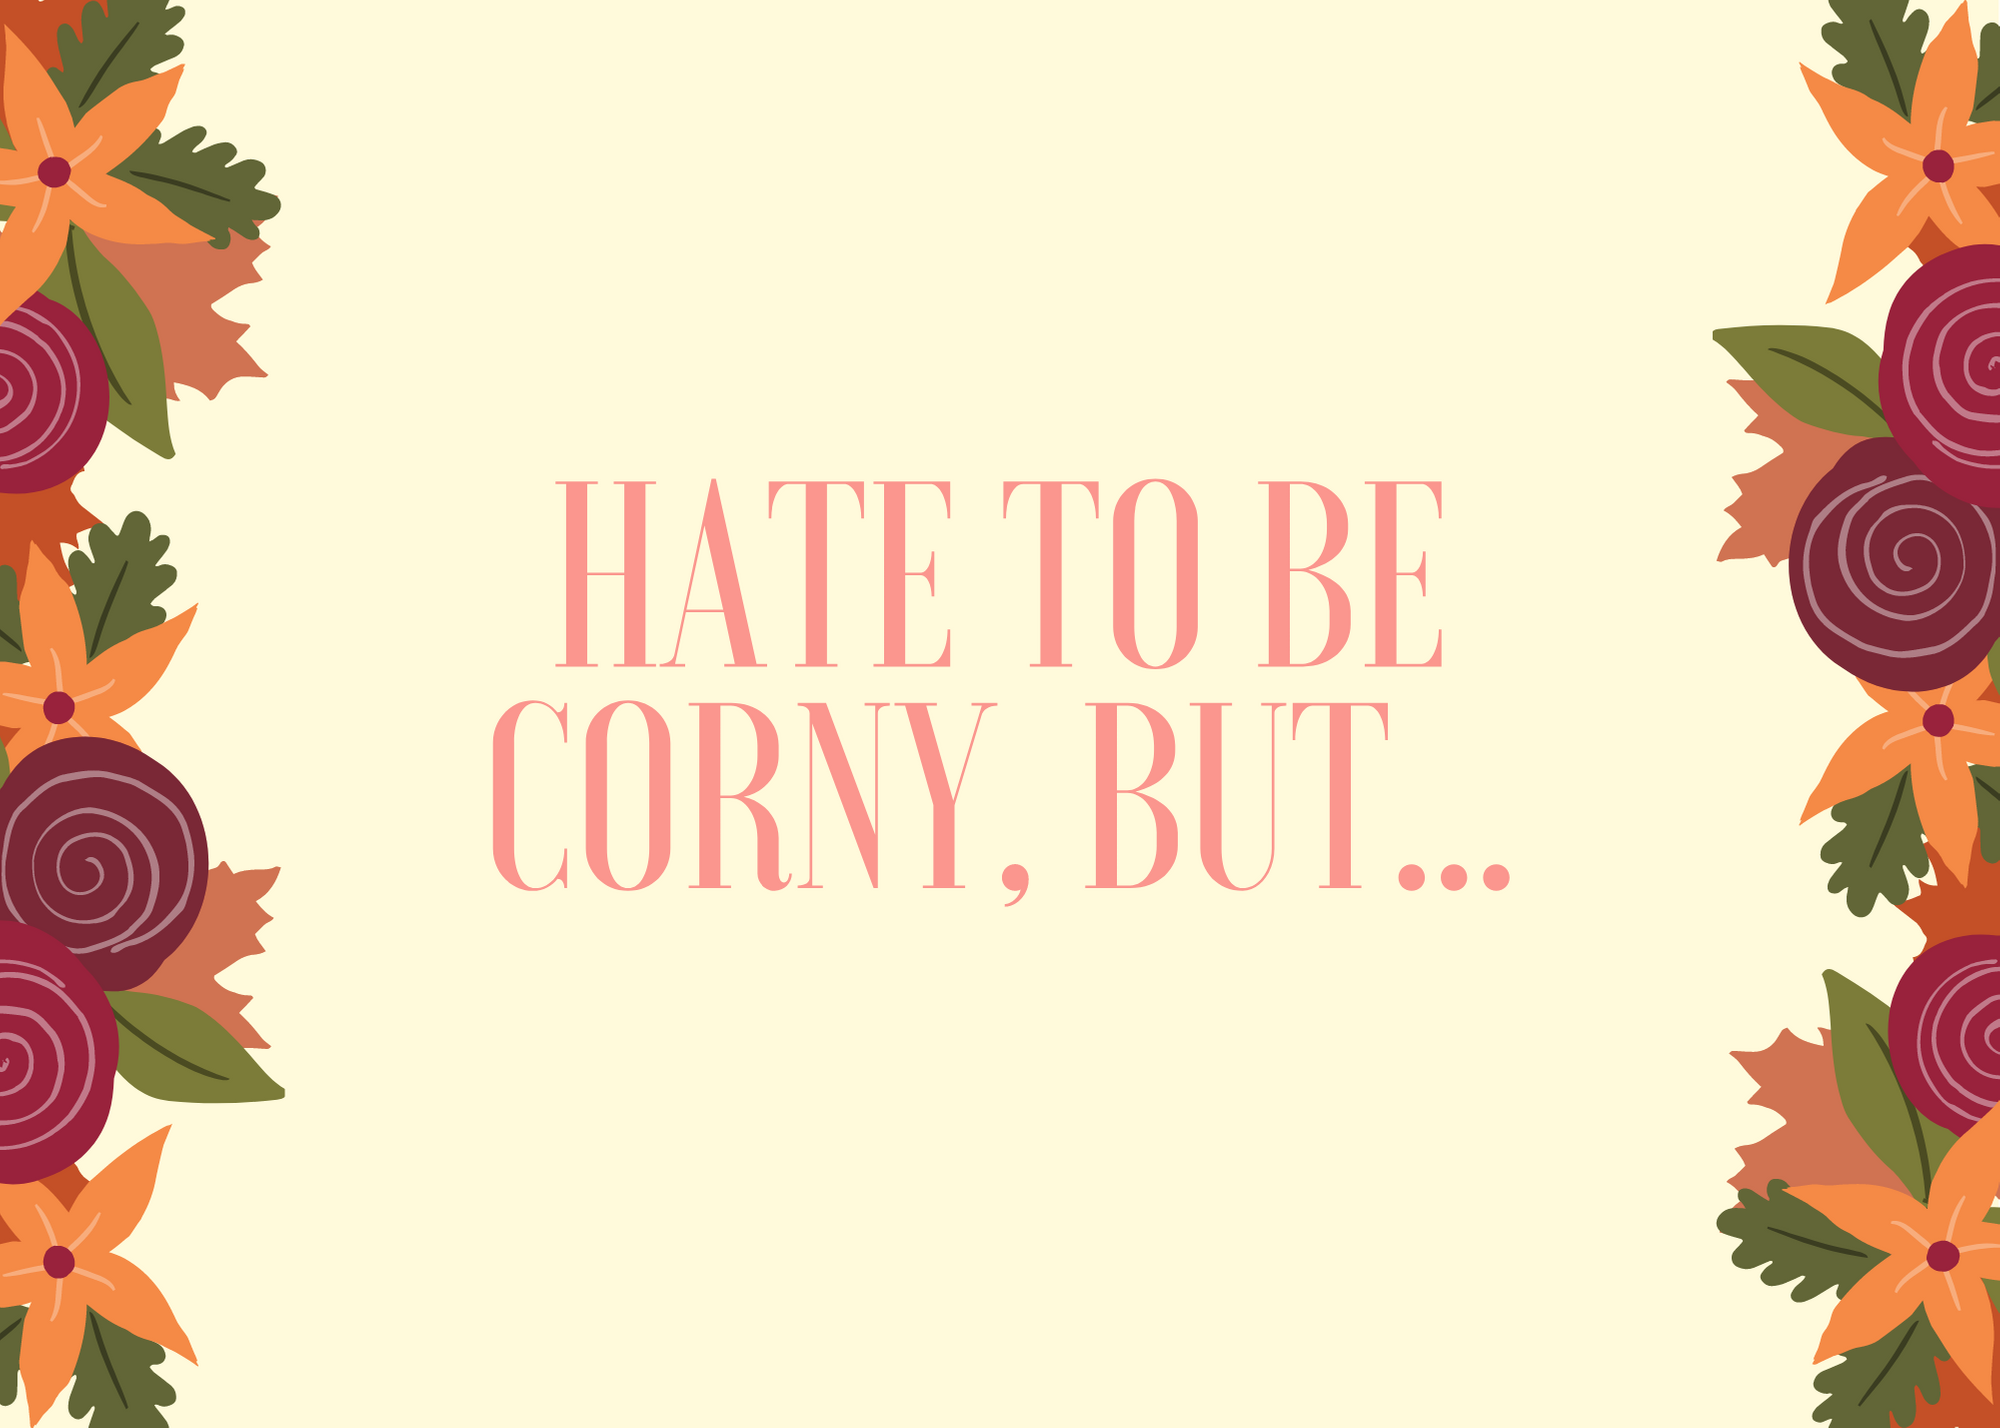 Funny Fall Instagram Caption About Being Corny